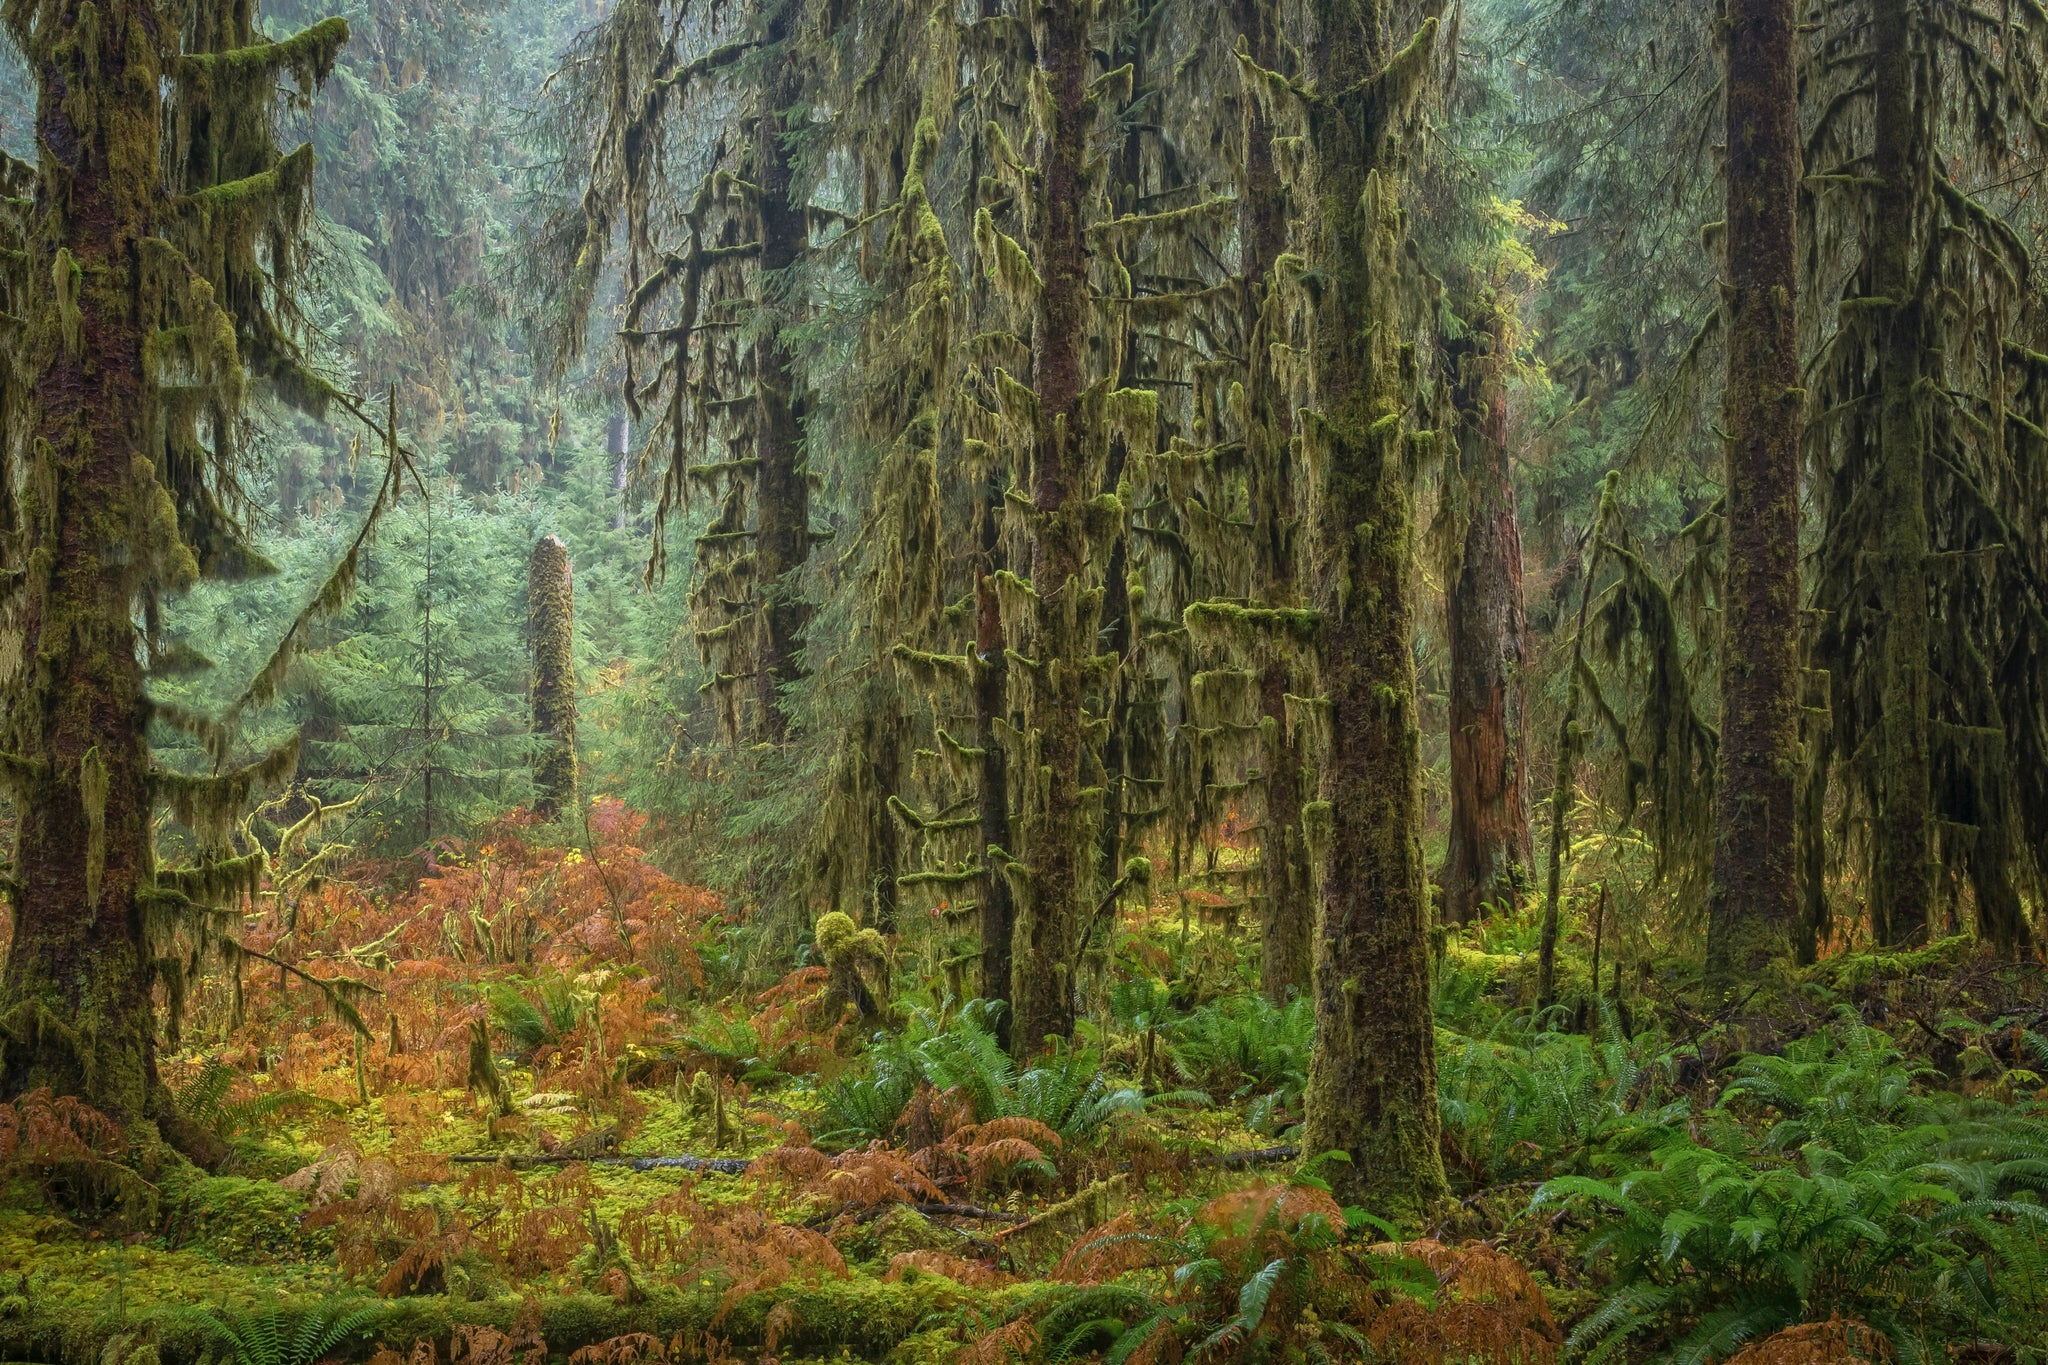 Beautiful and mystical Hoh rainforest, Washington